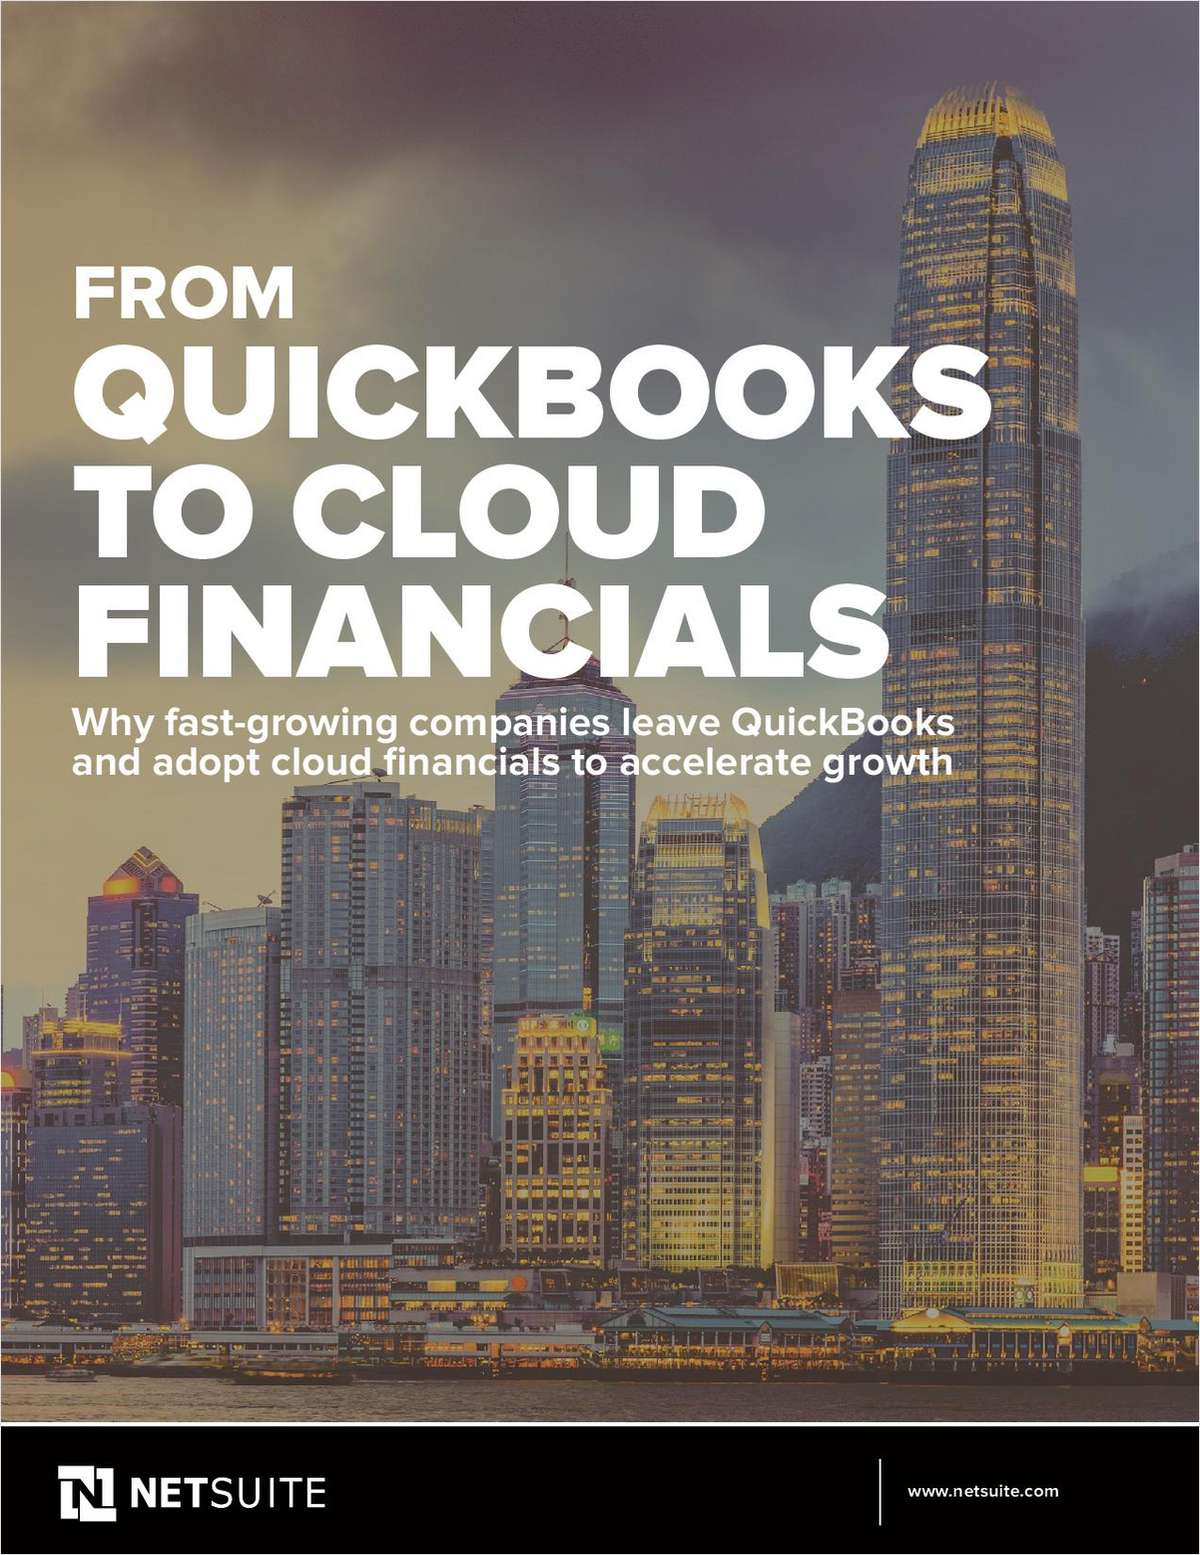 From QuickBooks to Cloud Financials